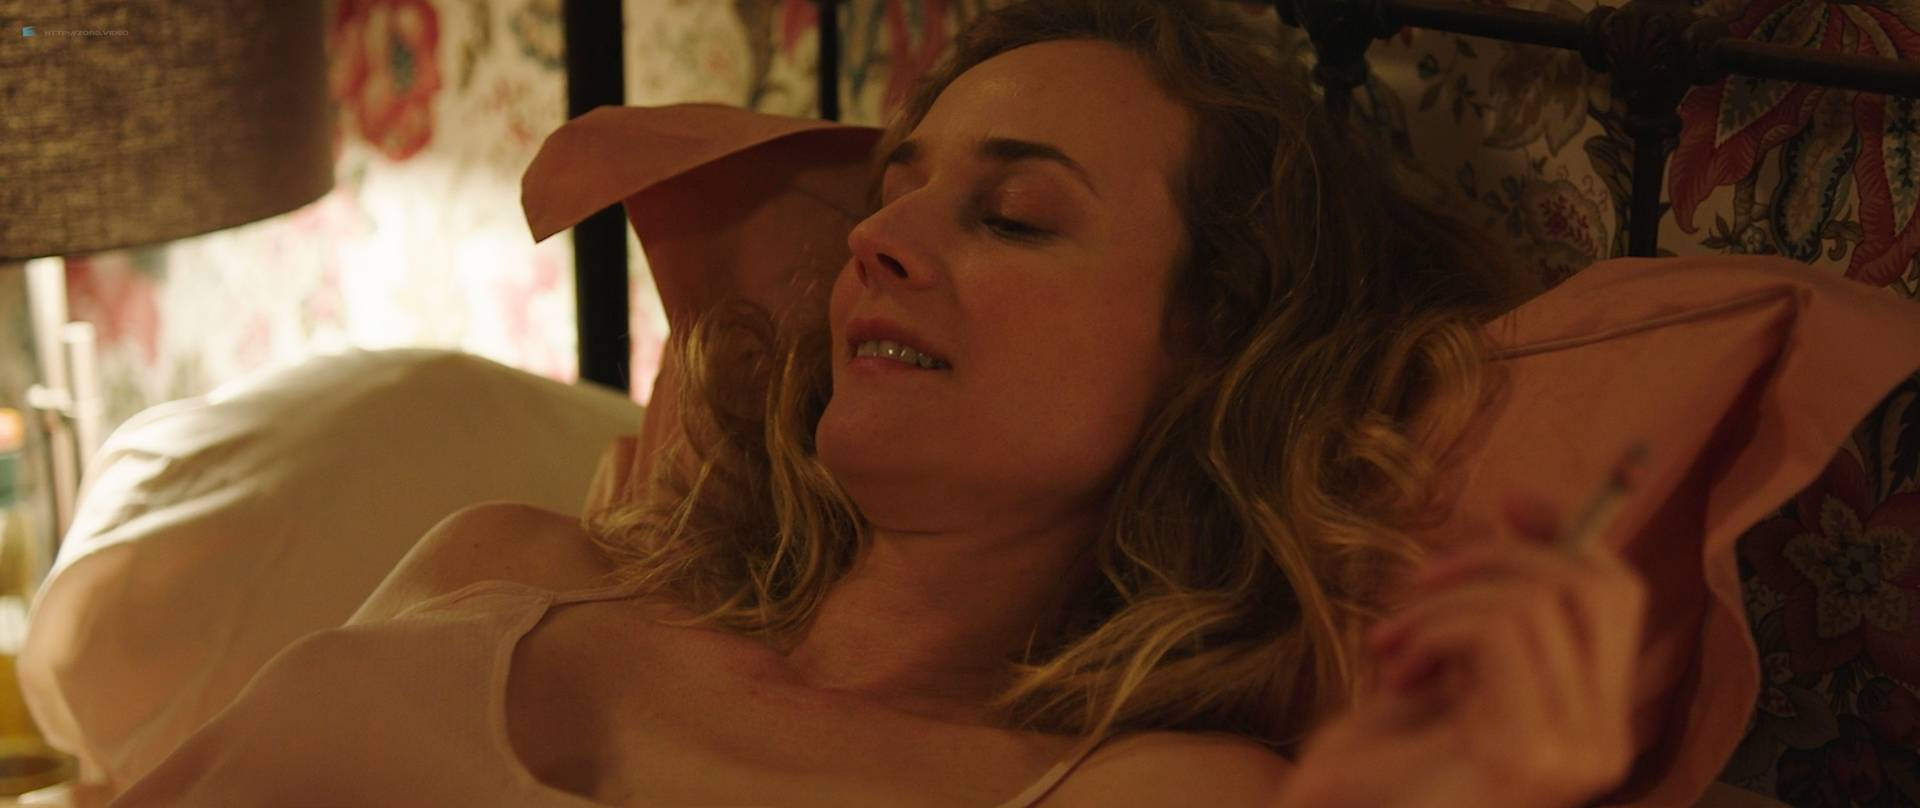 Diane-Kruger-nude-topless-and-sex-in-the-car-Tout-Nous-Separe-FR-2017-HD-1080p-BluRay-001.jpg